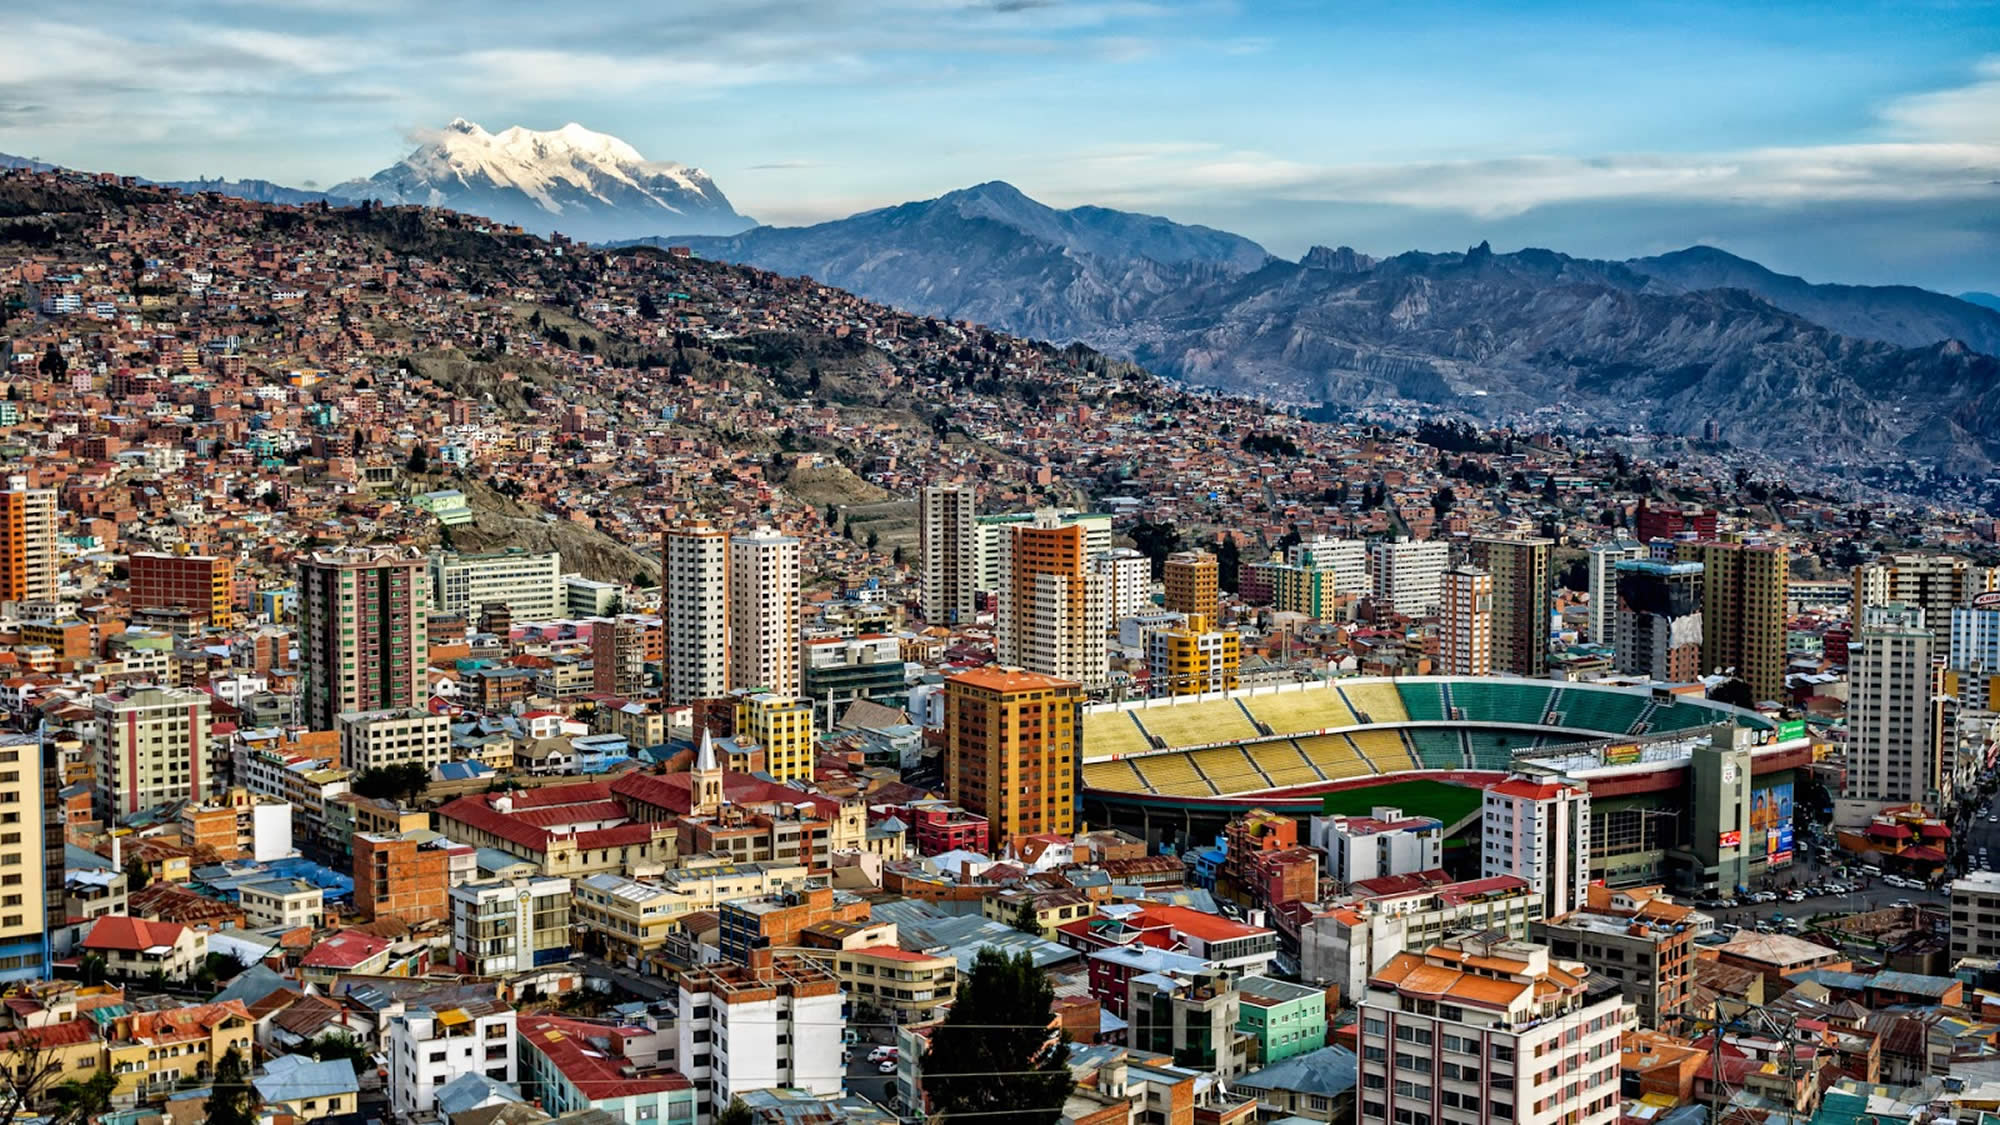 La Paz, City of Wonder, La Paz